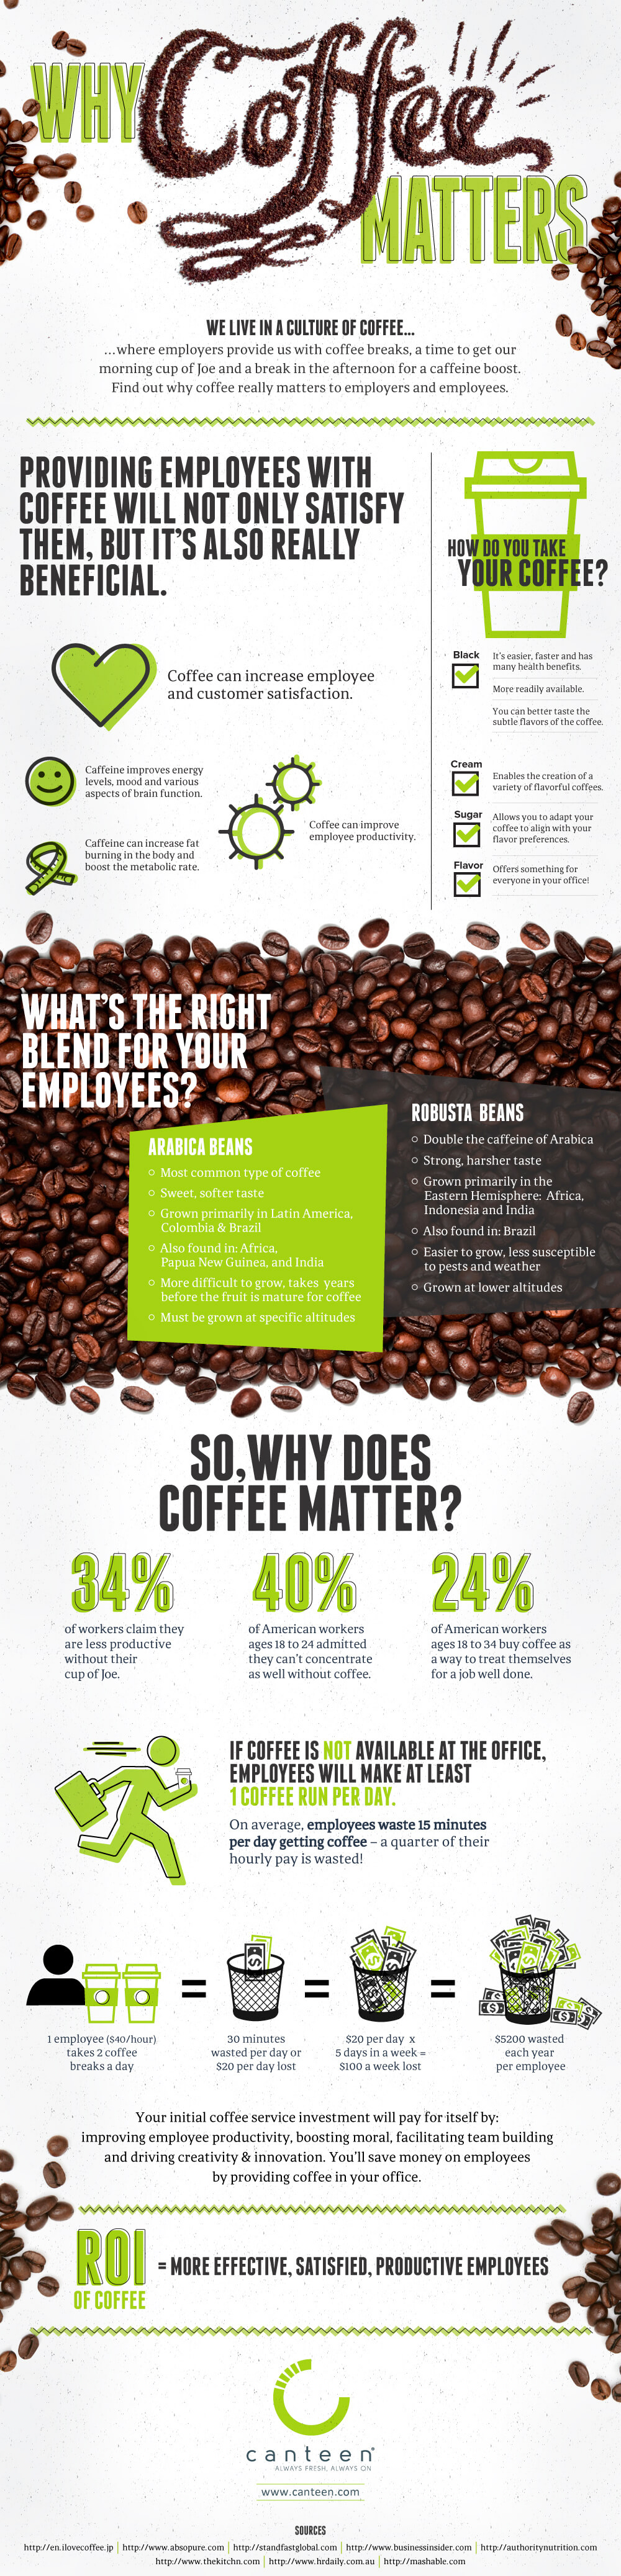 Canteen-Why-Coffee-Matters-Infographic